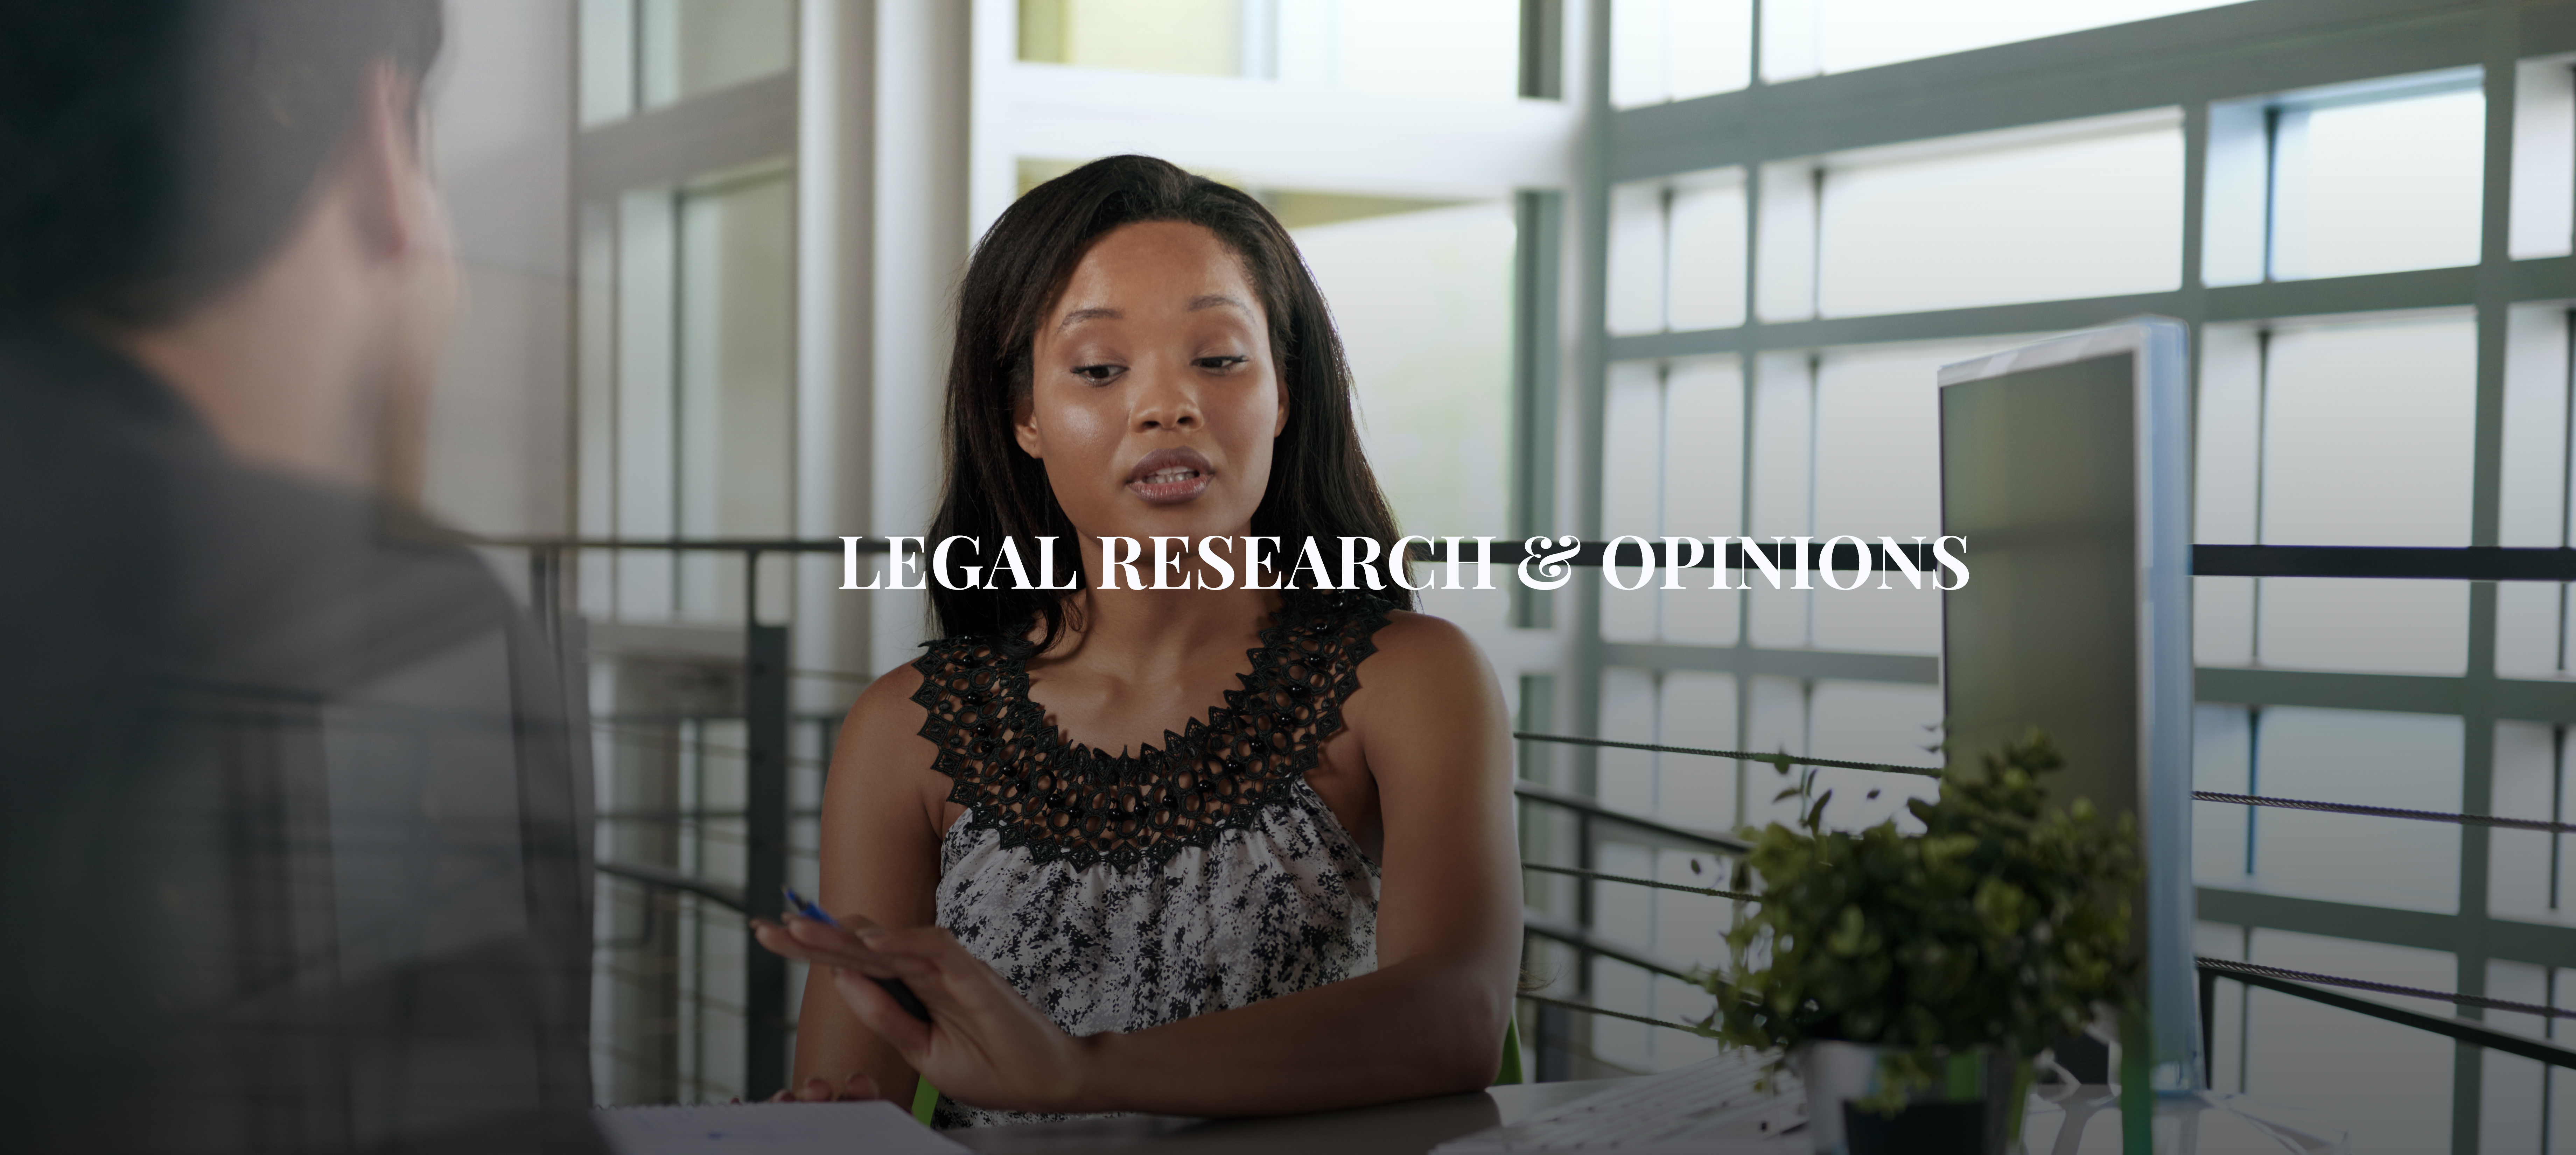 Legal Research and Opinions at DDH Tax